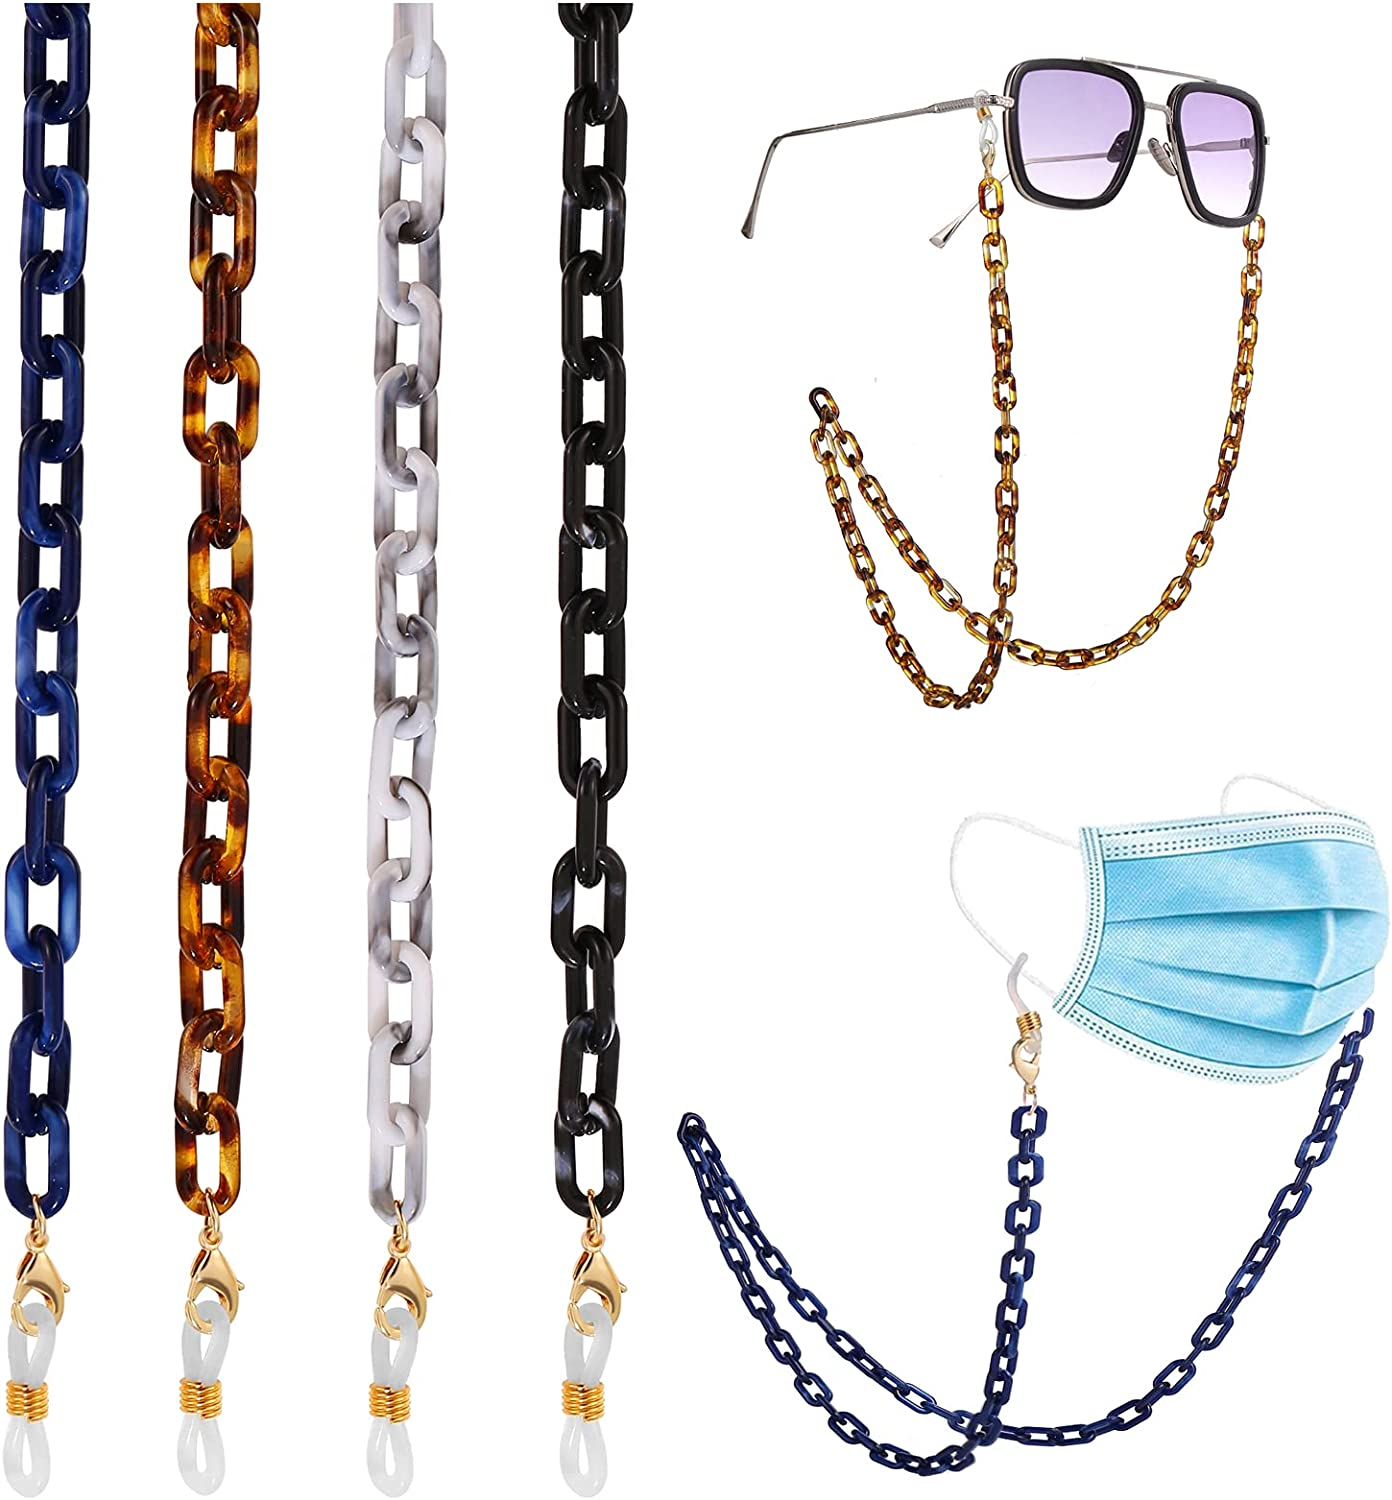 Face Mask Chains for Women Kids to Hold Masks/Sunglasses/Eyeglass Around Neck, Anti-Lost Chunky Eyeglass Chain with Clips